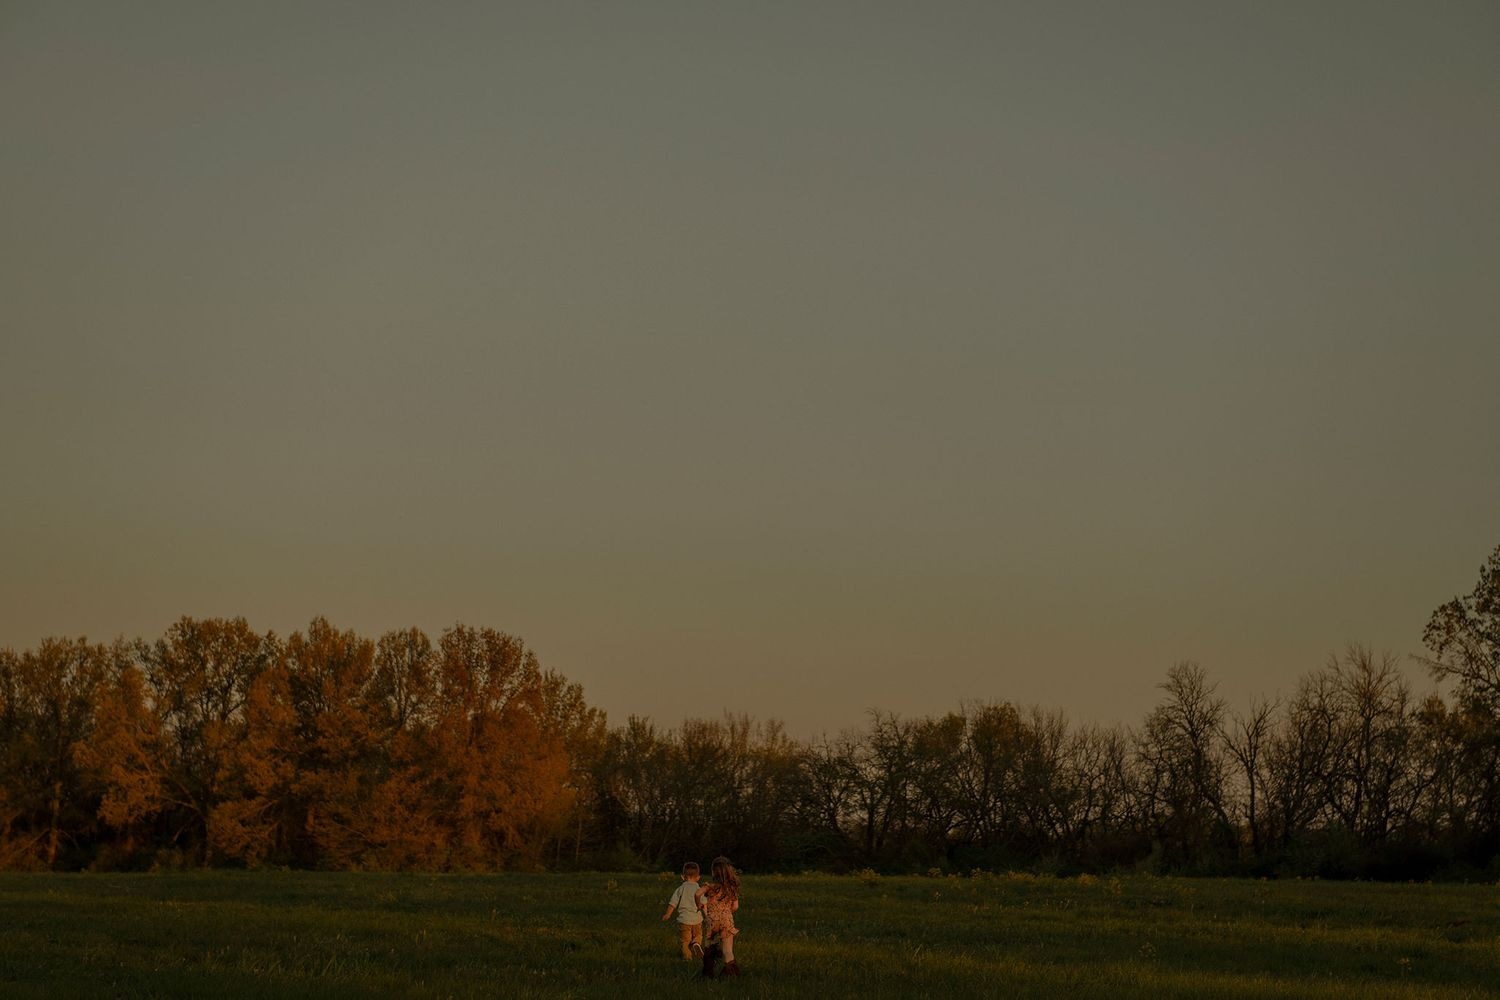 young children and siblings, run through field at golden hour (sunset)